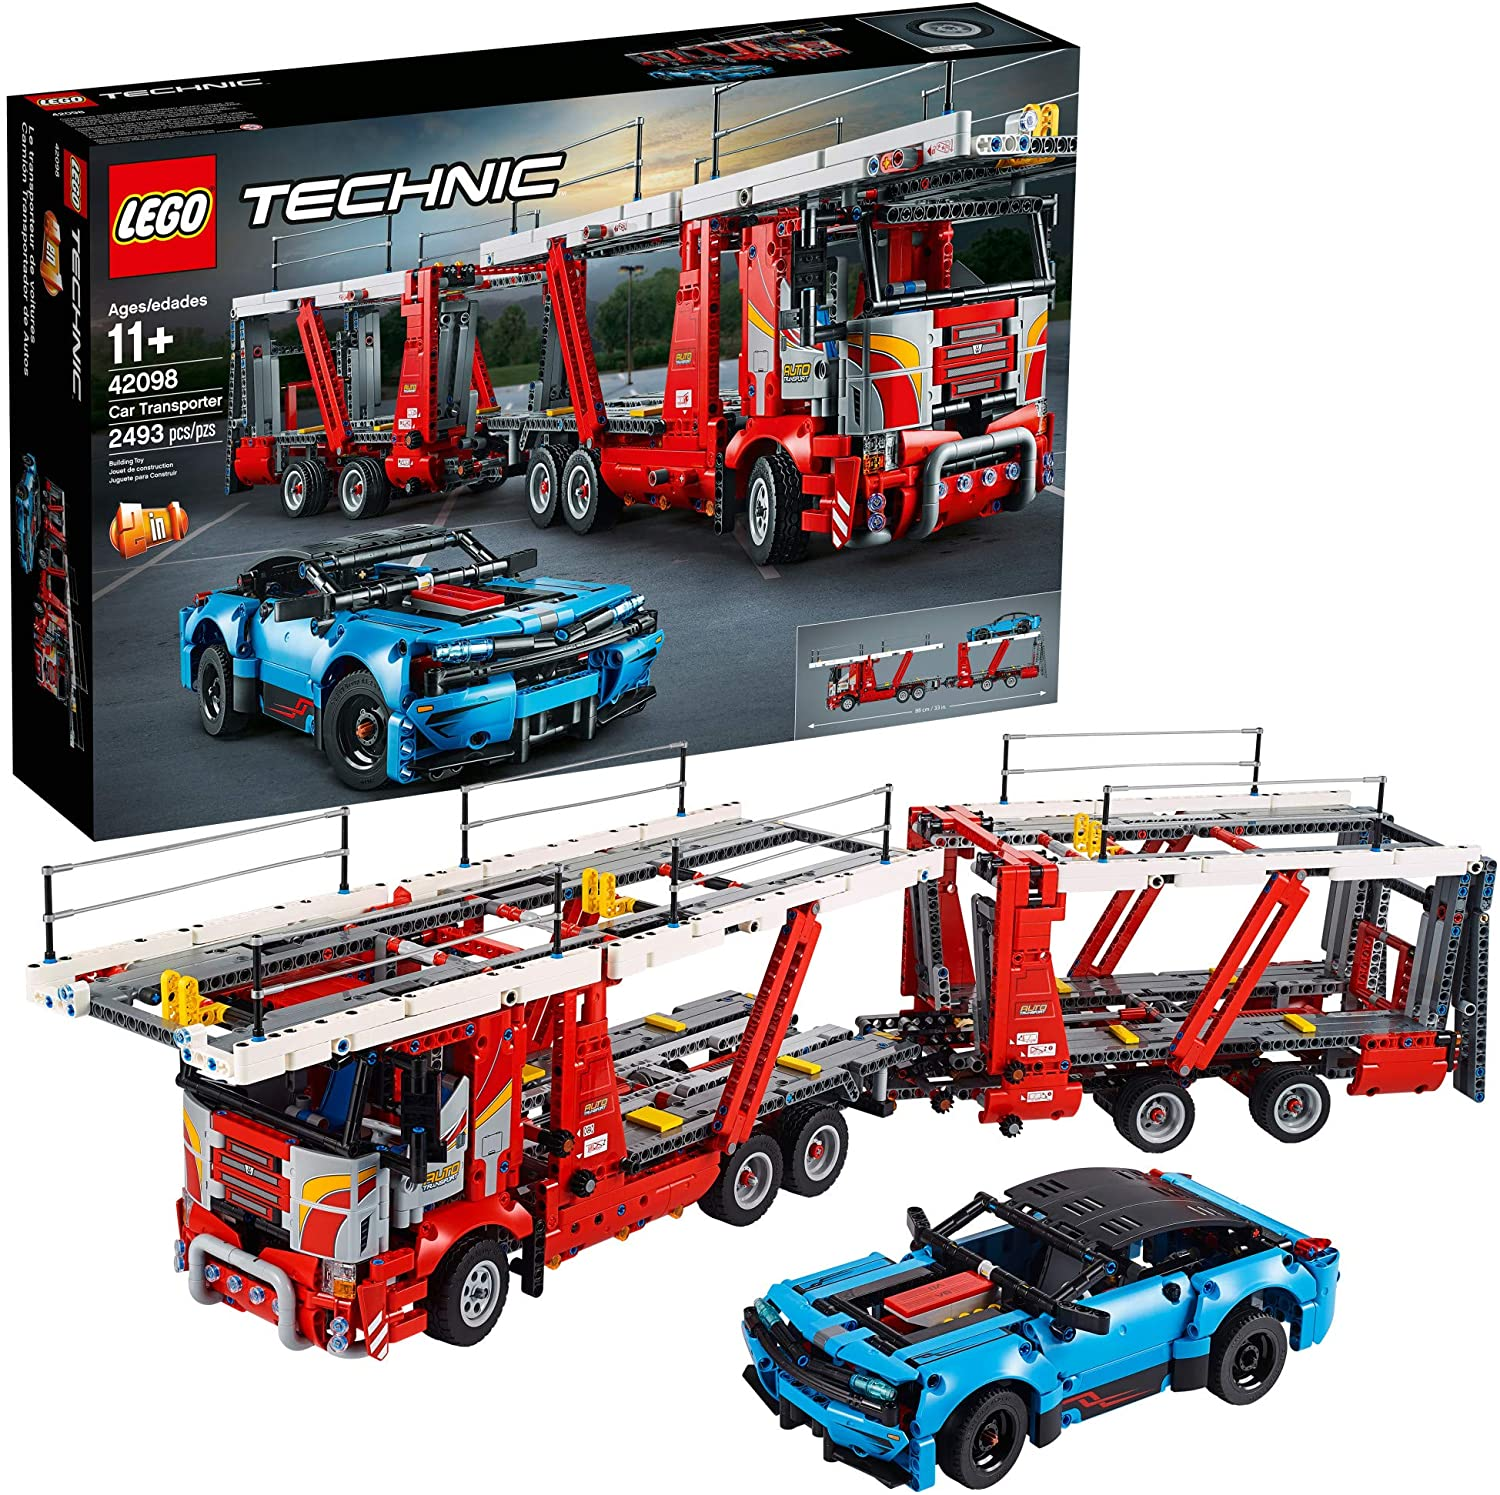 Amazon Com Lego Technic Car Transporter 42098 Toy Truck And Trailer Building Set With Blue Car Best Engineering And Stem Toy For Boys And Girls 2493 Pieces Toys Games